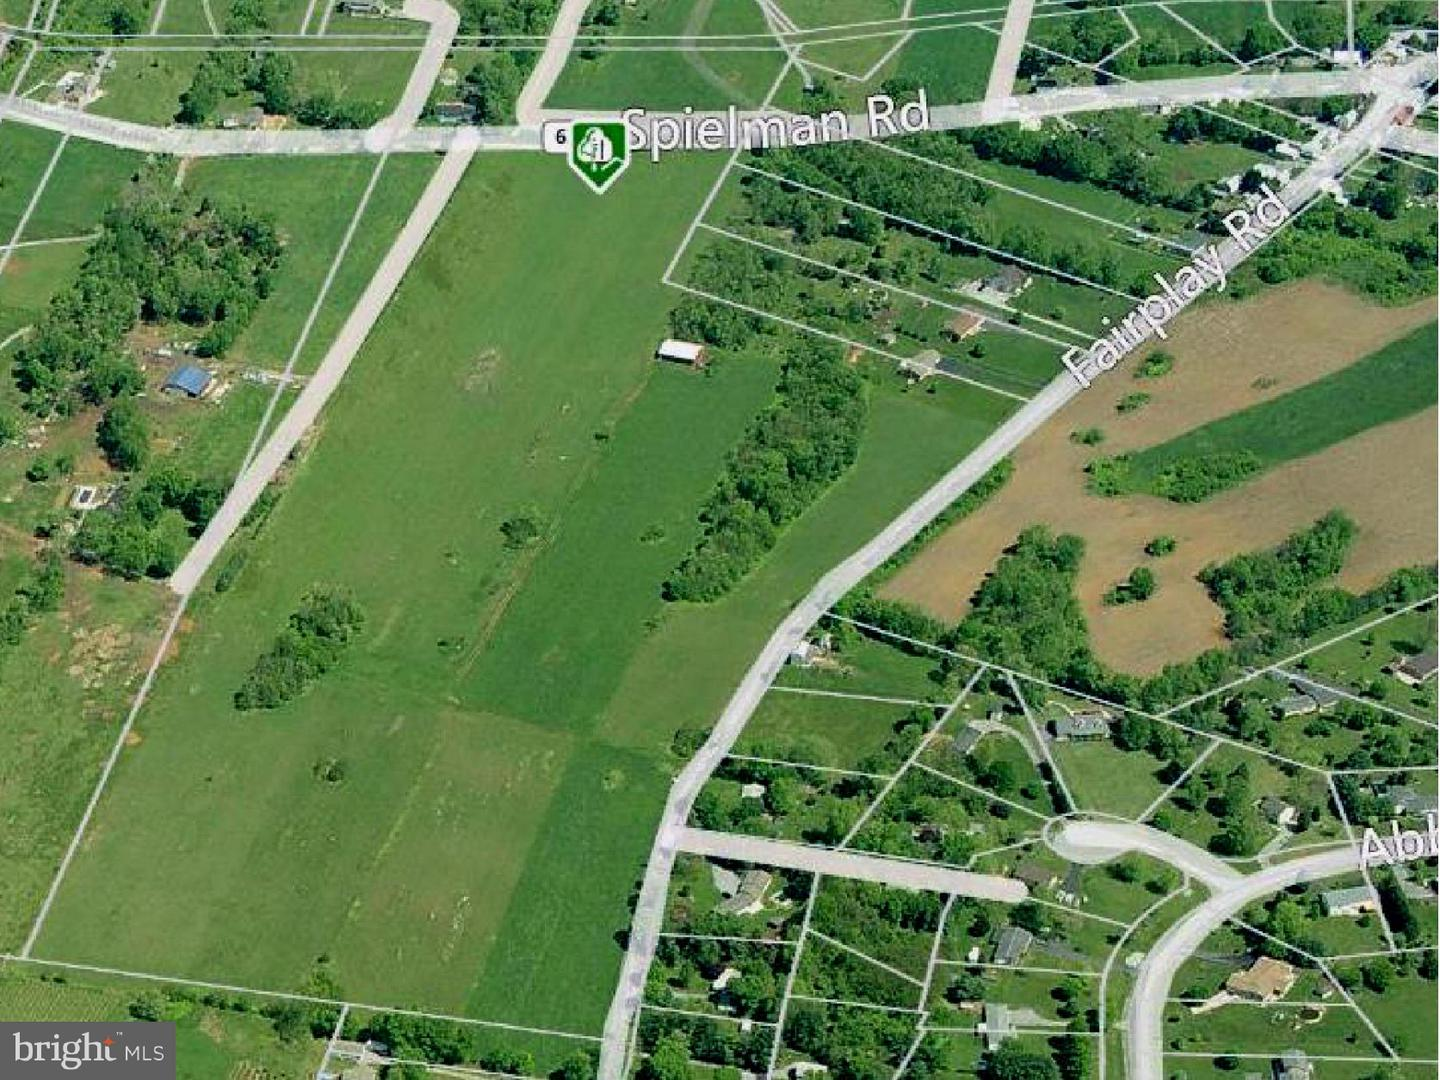 Land for Sale at Spielman Rd Fairplay, Maryland 21733 United States